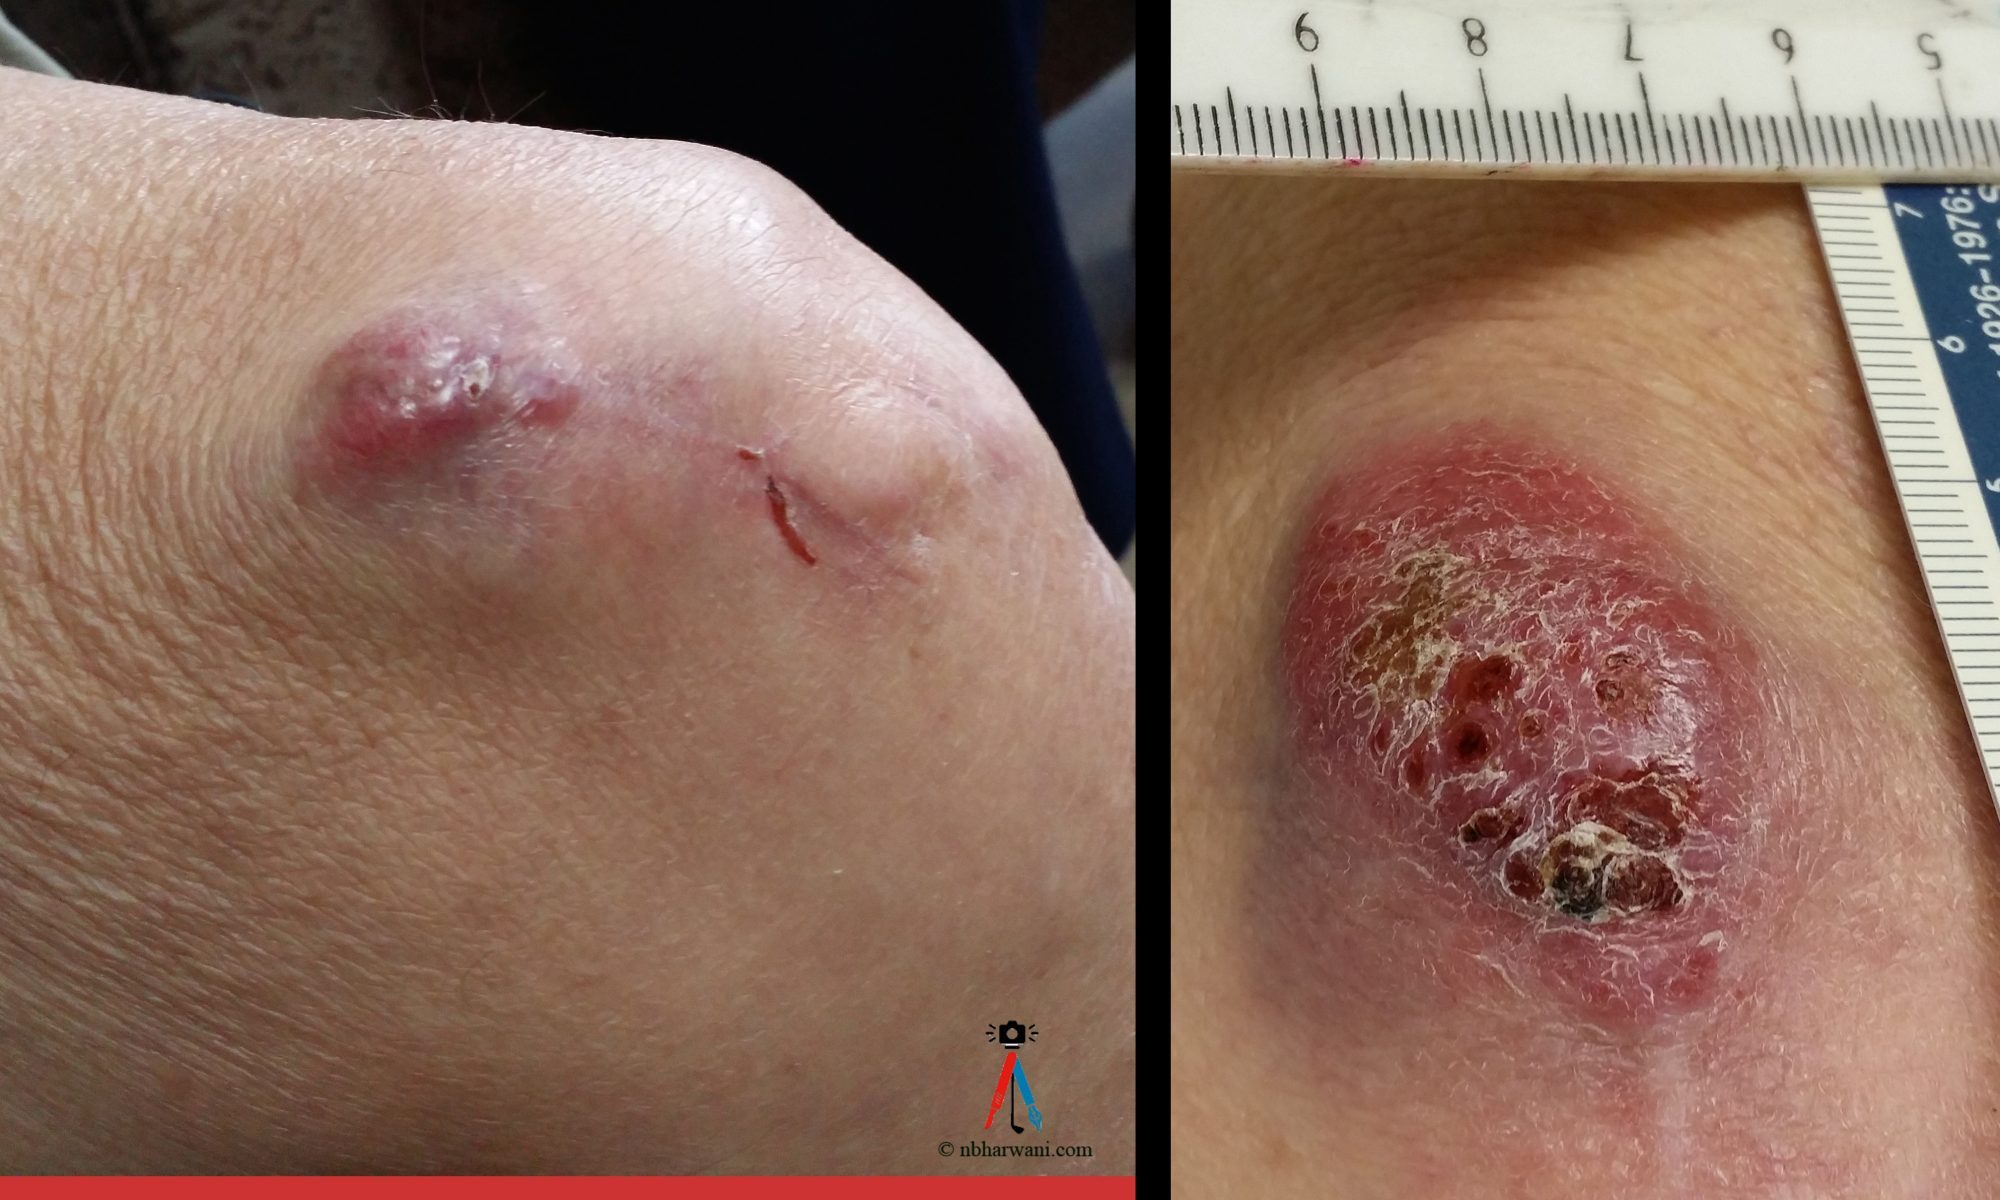 Left: Merkel cell carcinoma recurrence a few months after excision. Right: Progressive increase in size of recurrence over a few months. (Dr. Noorali Bharwani)